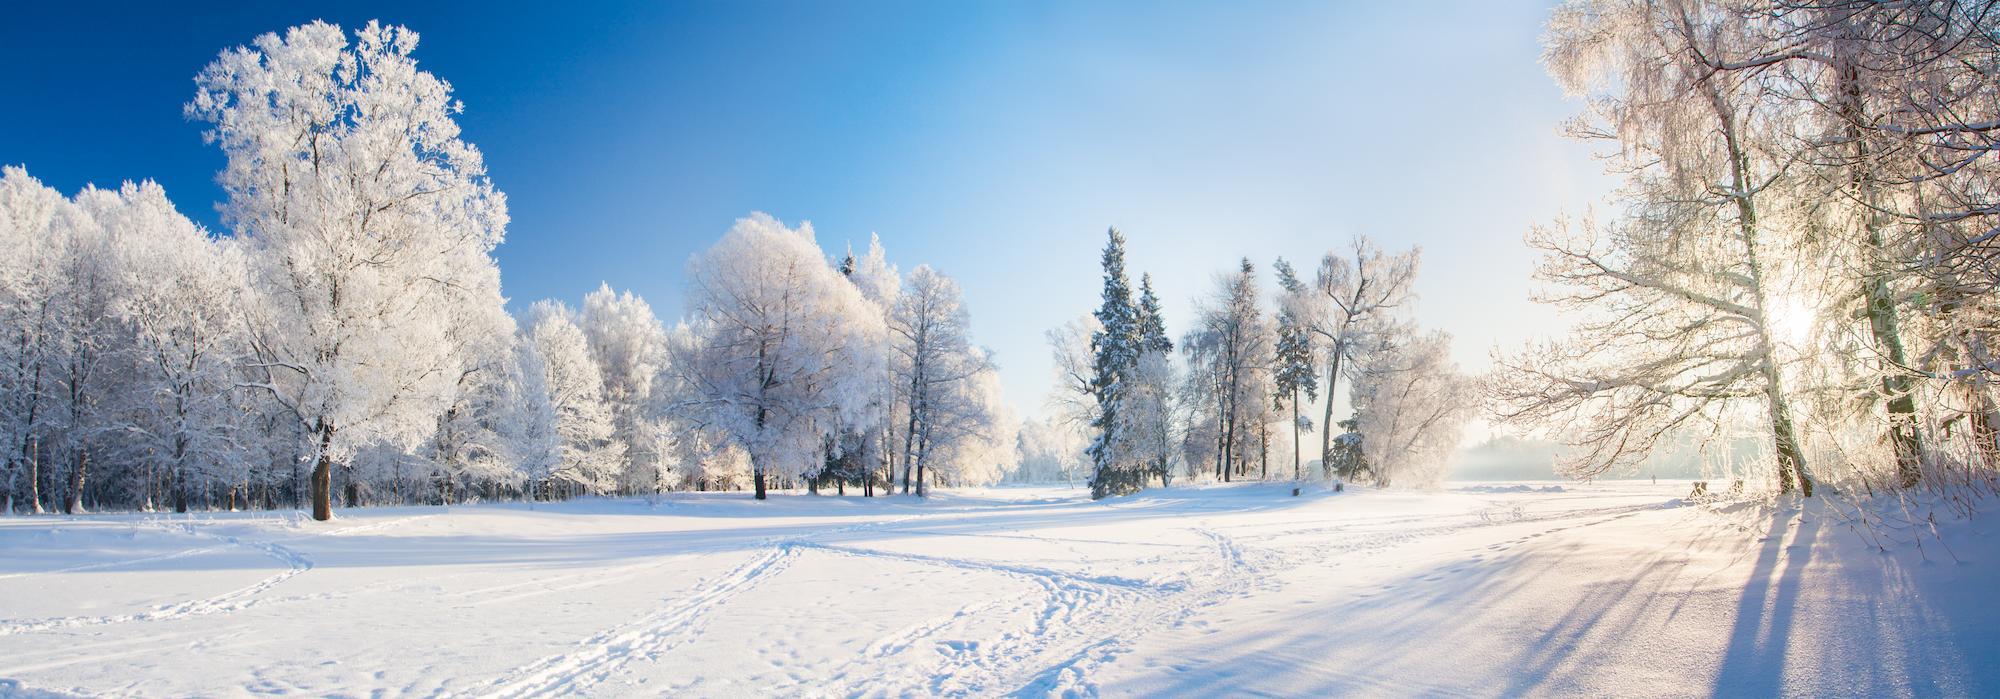 snowy field and trees